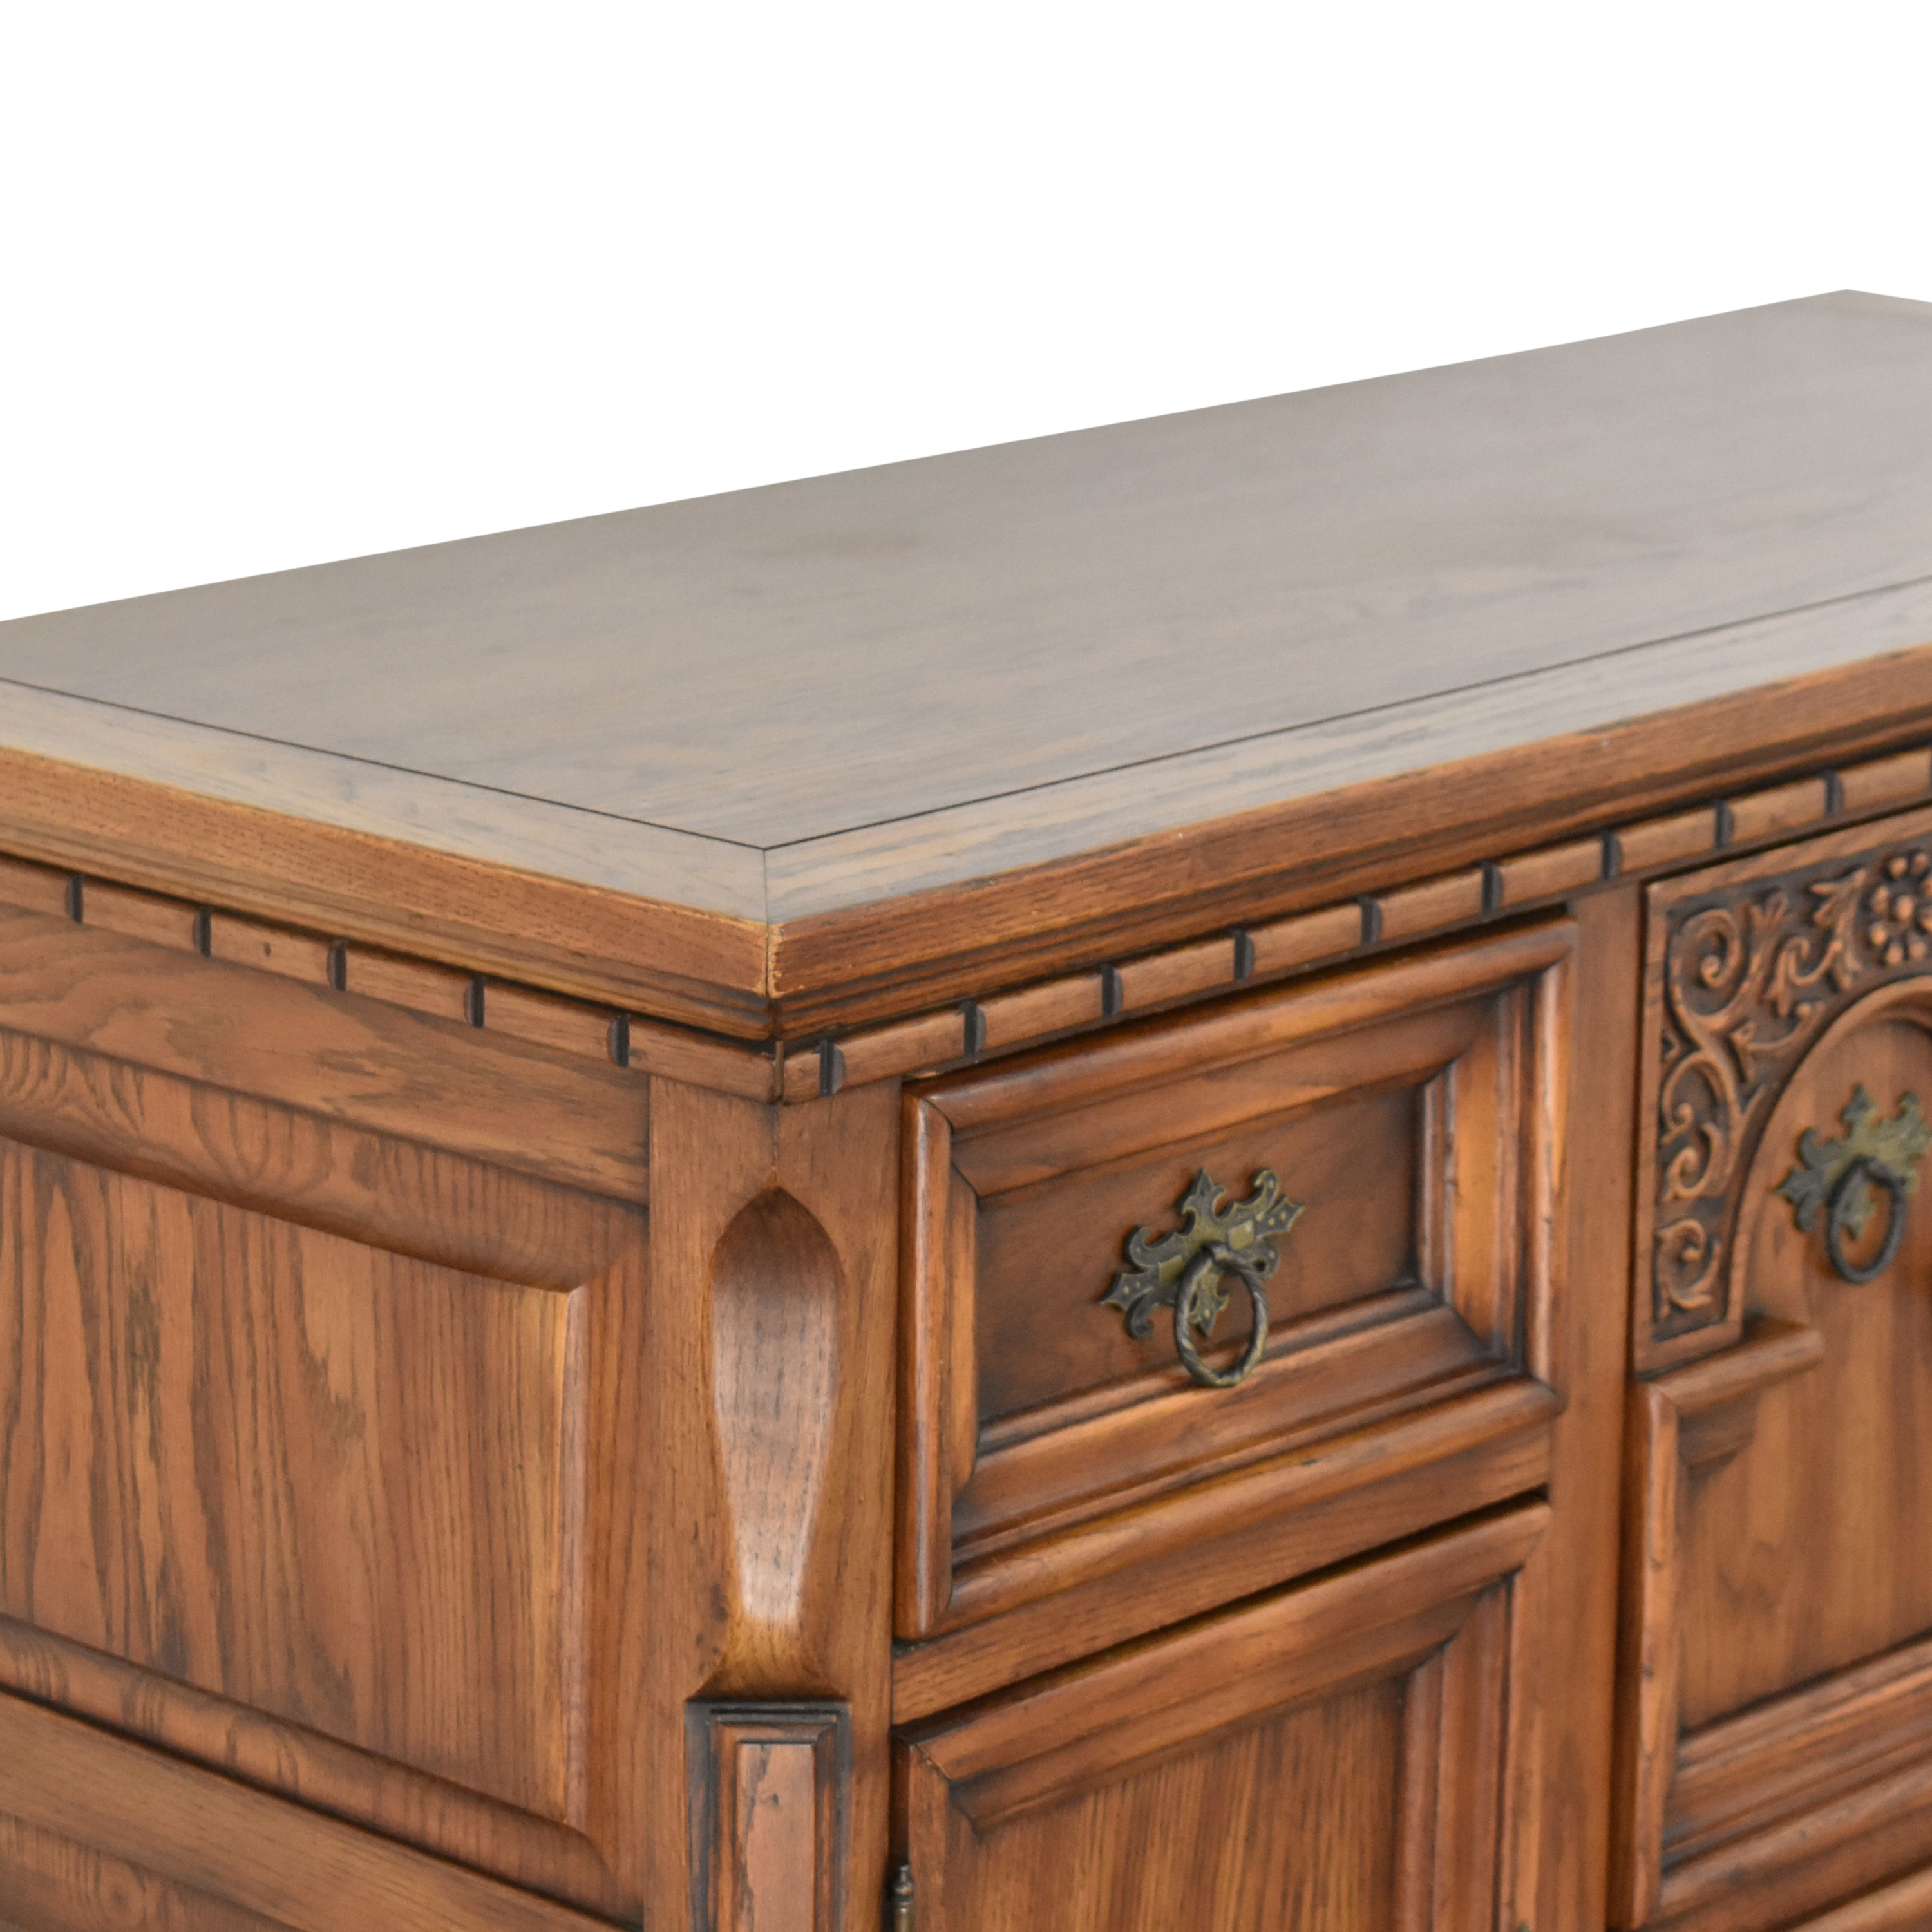 Link-Taylor Link-Taylor Buffet Cabinet Cabinets & Sideboards